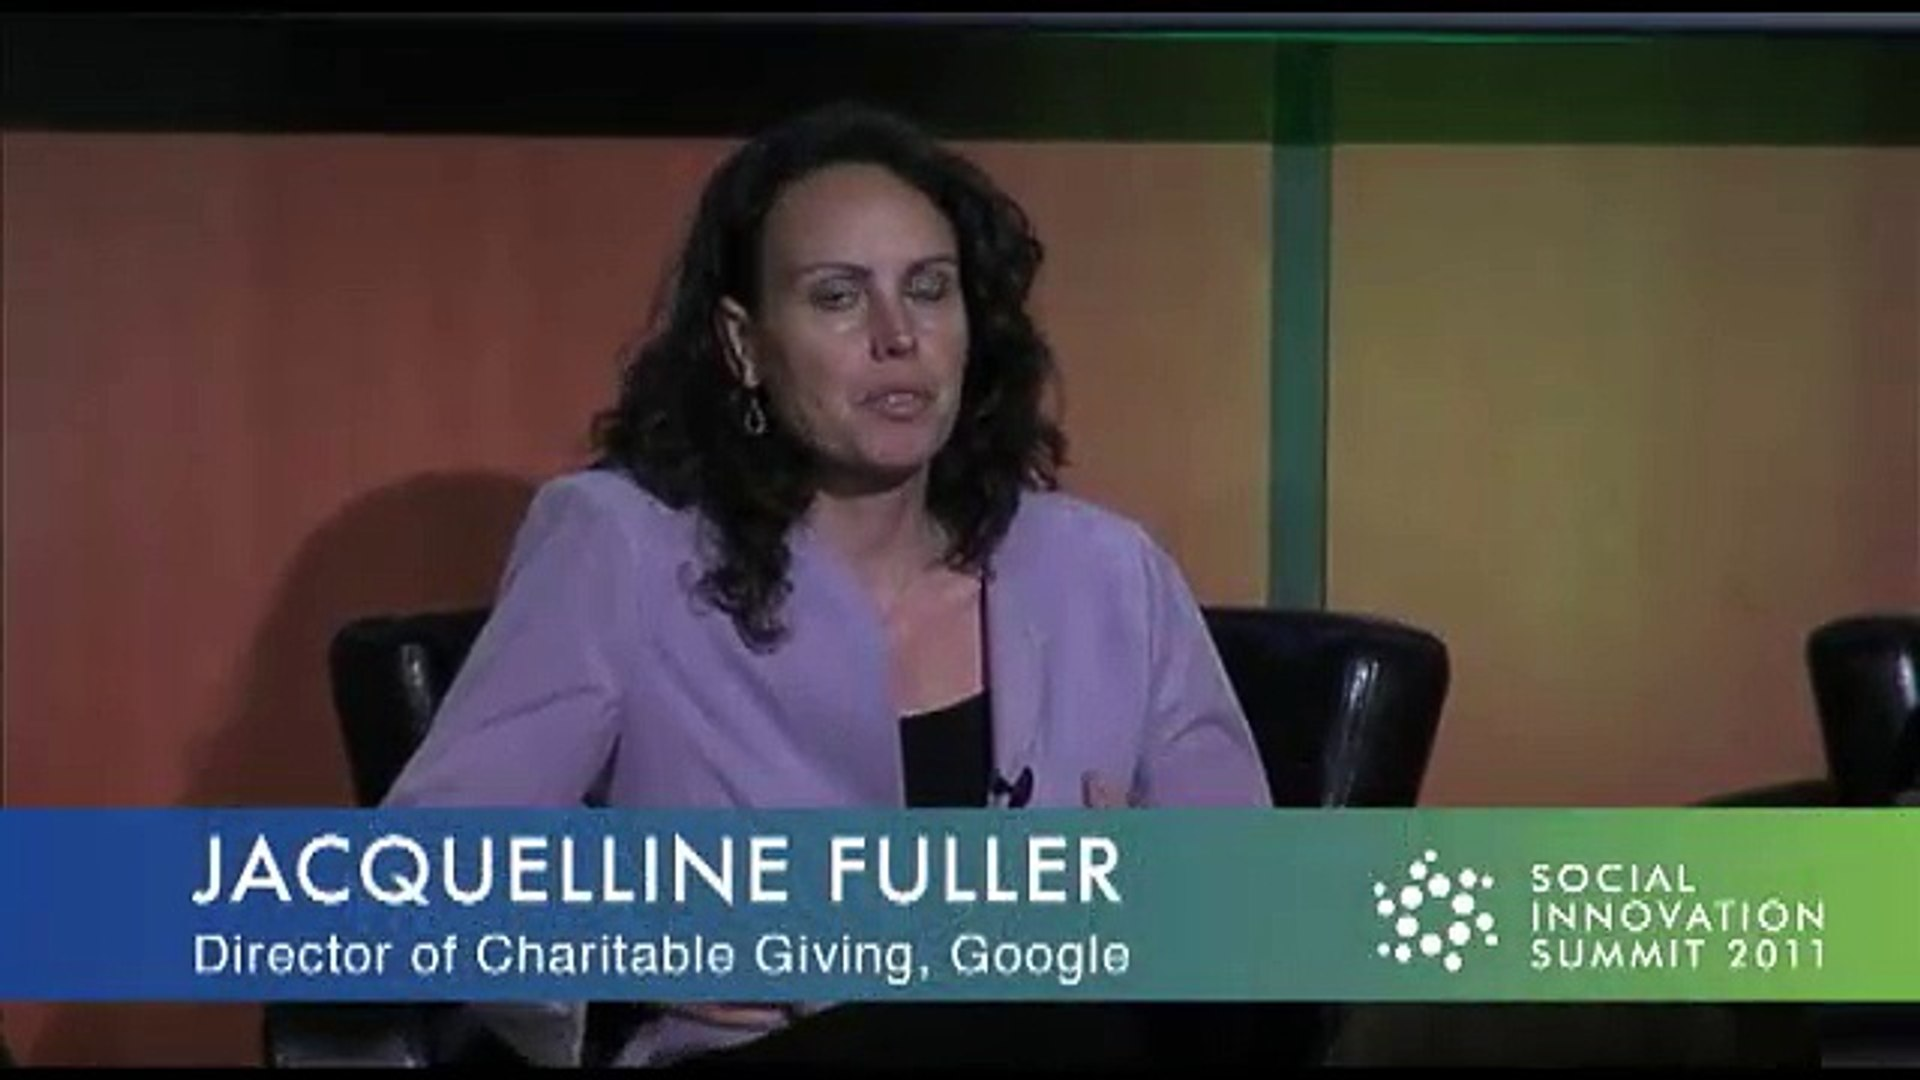 Google Grants: What We Look For in a Non-Profit